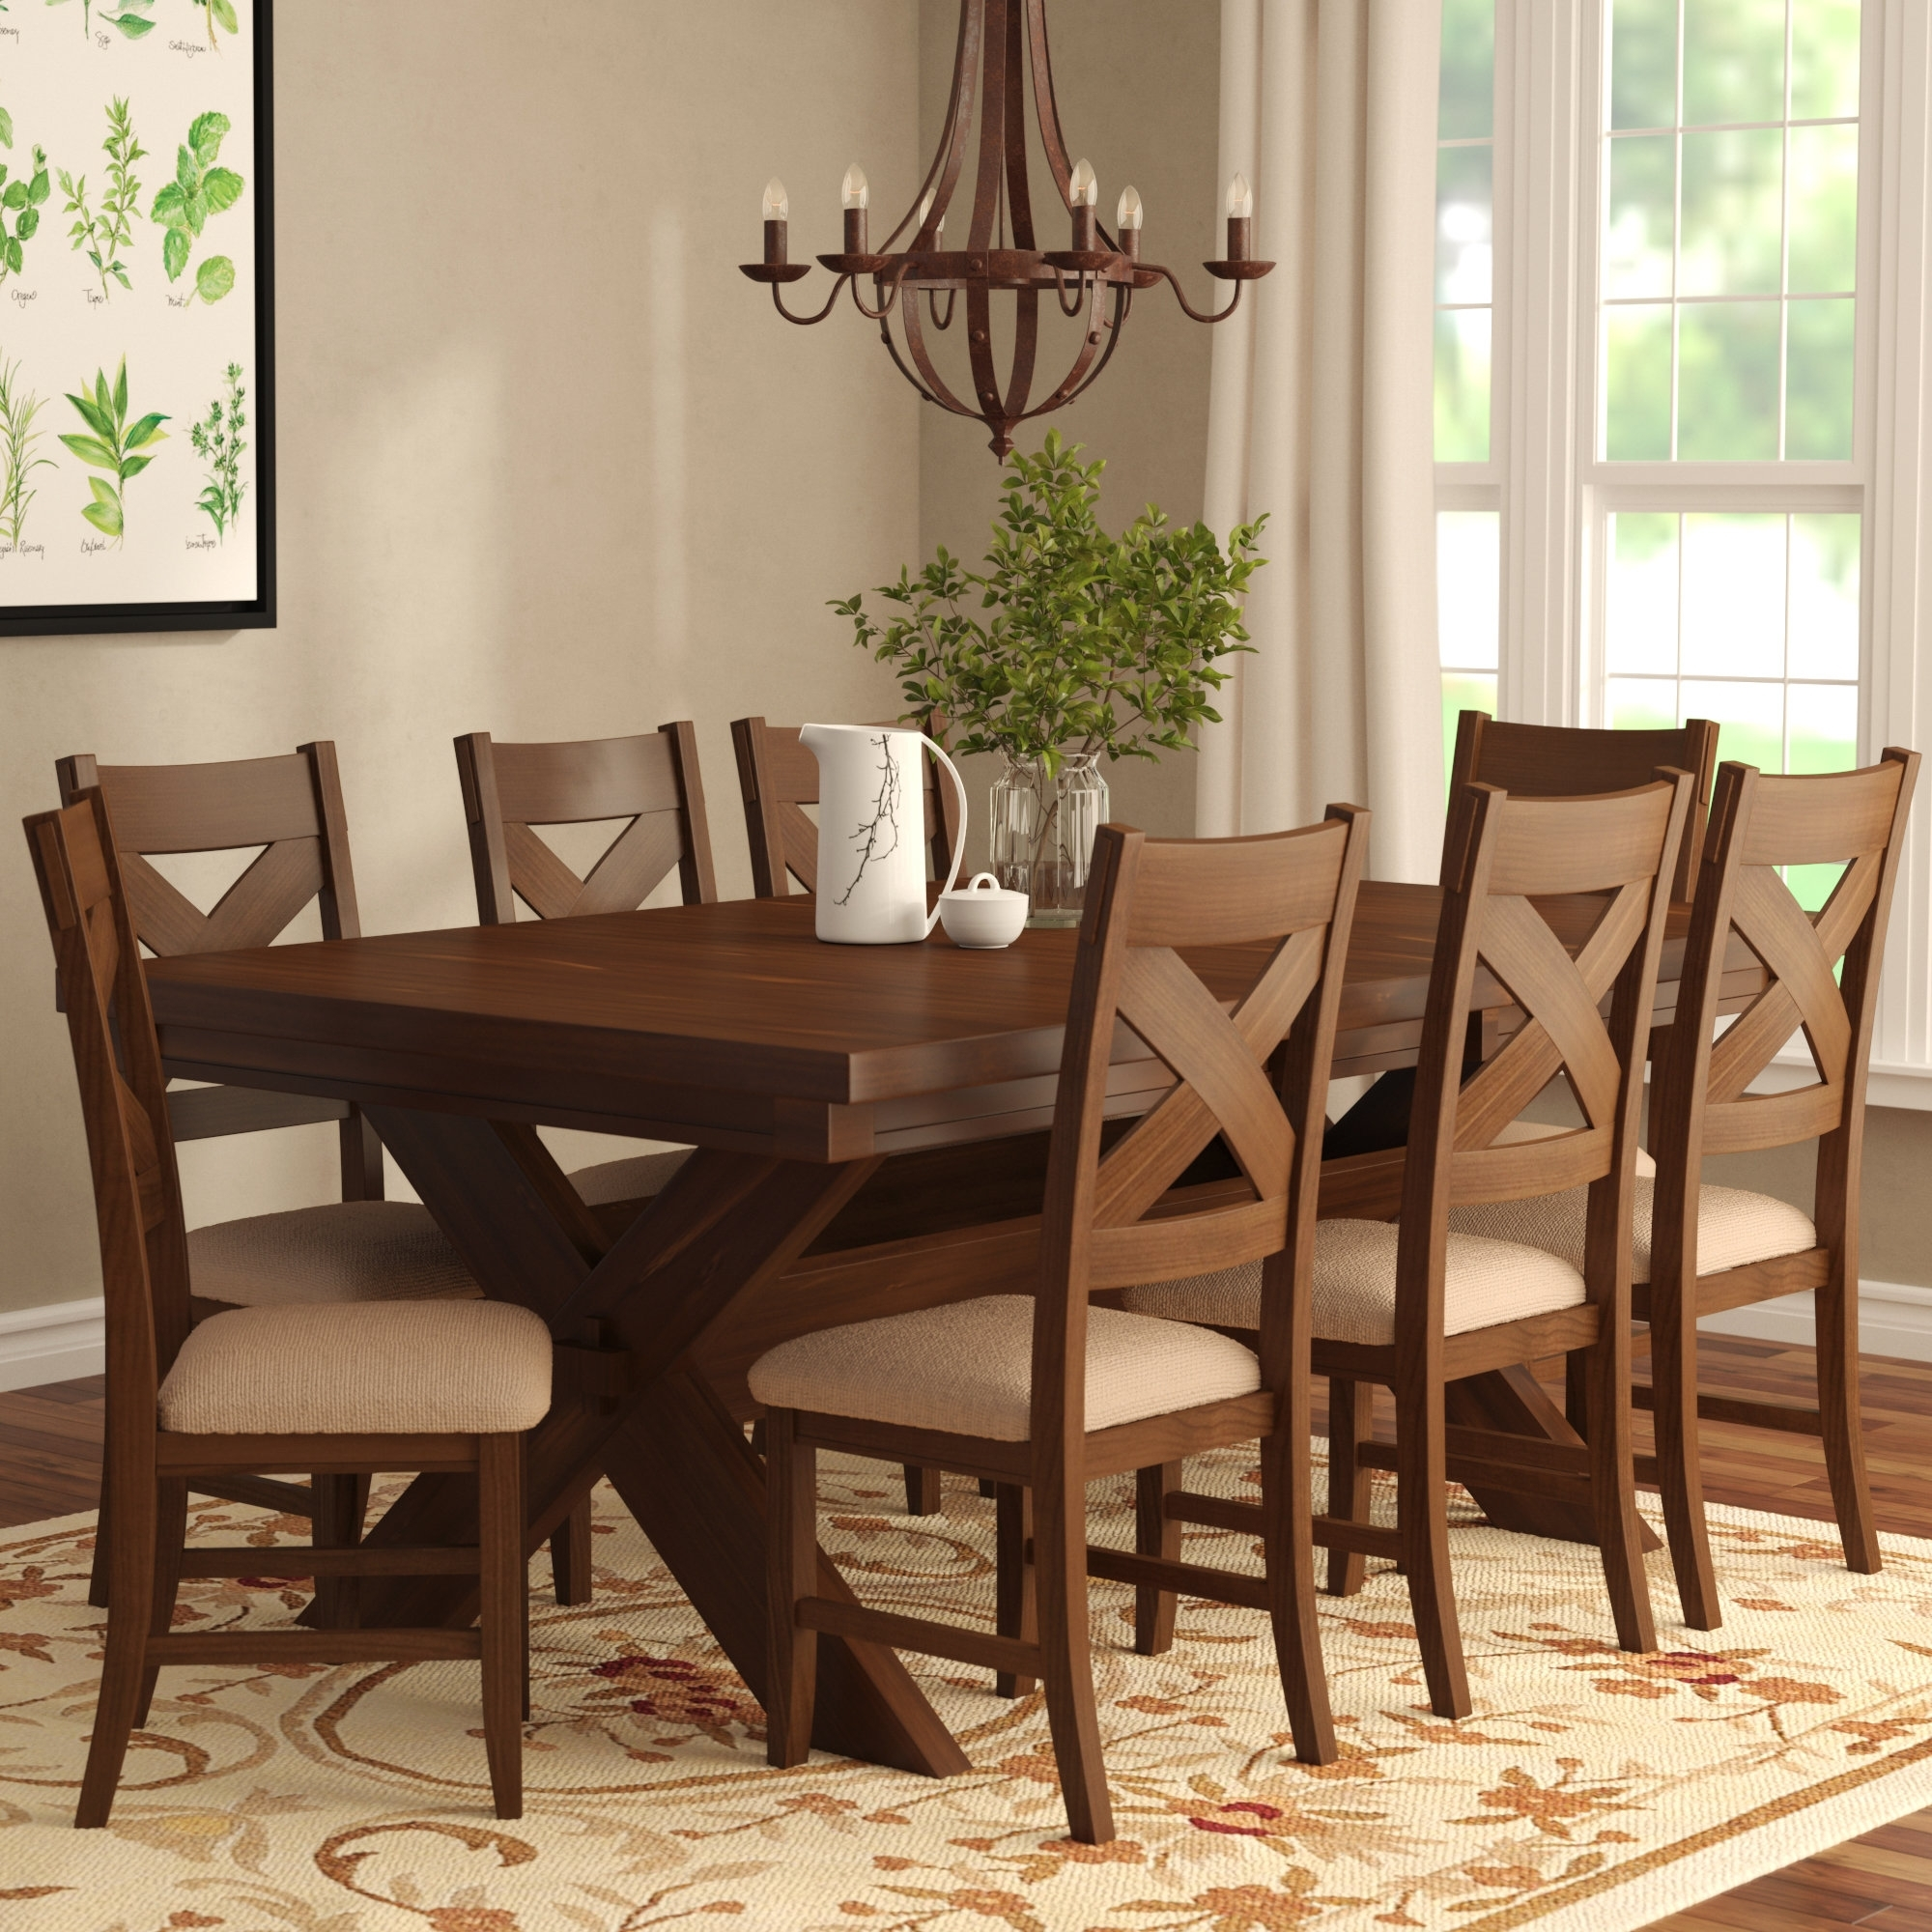 Laurel Foundry Modern Farmhouse Isabell 9 Piece Dining Set & Reviews Pertaining To Recent Caden 6 Piece Dining Sets With Upholstered Side Chair (View 17 of 20)